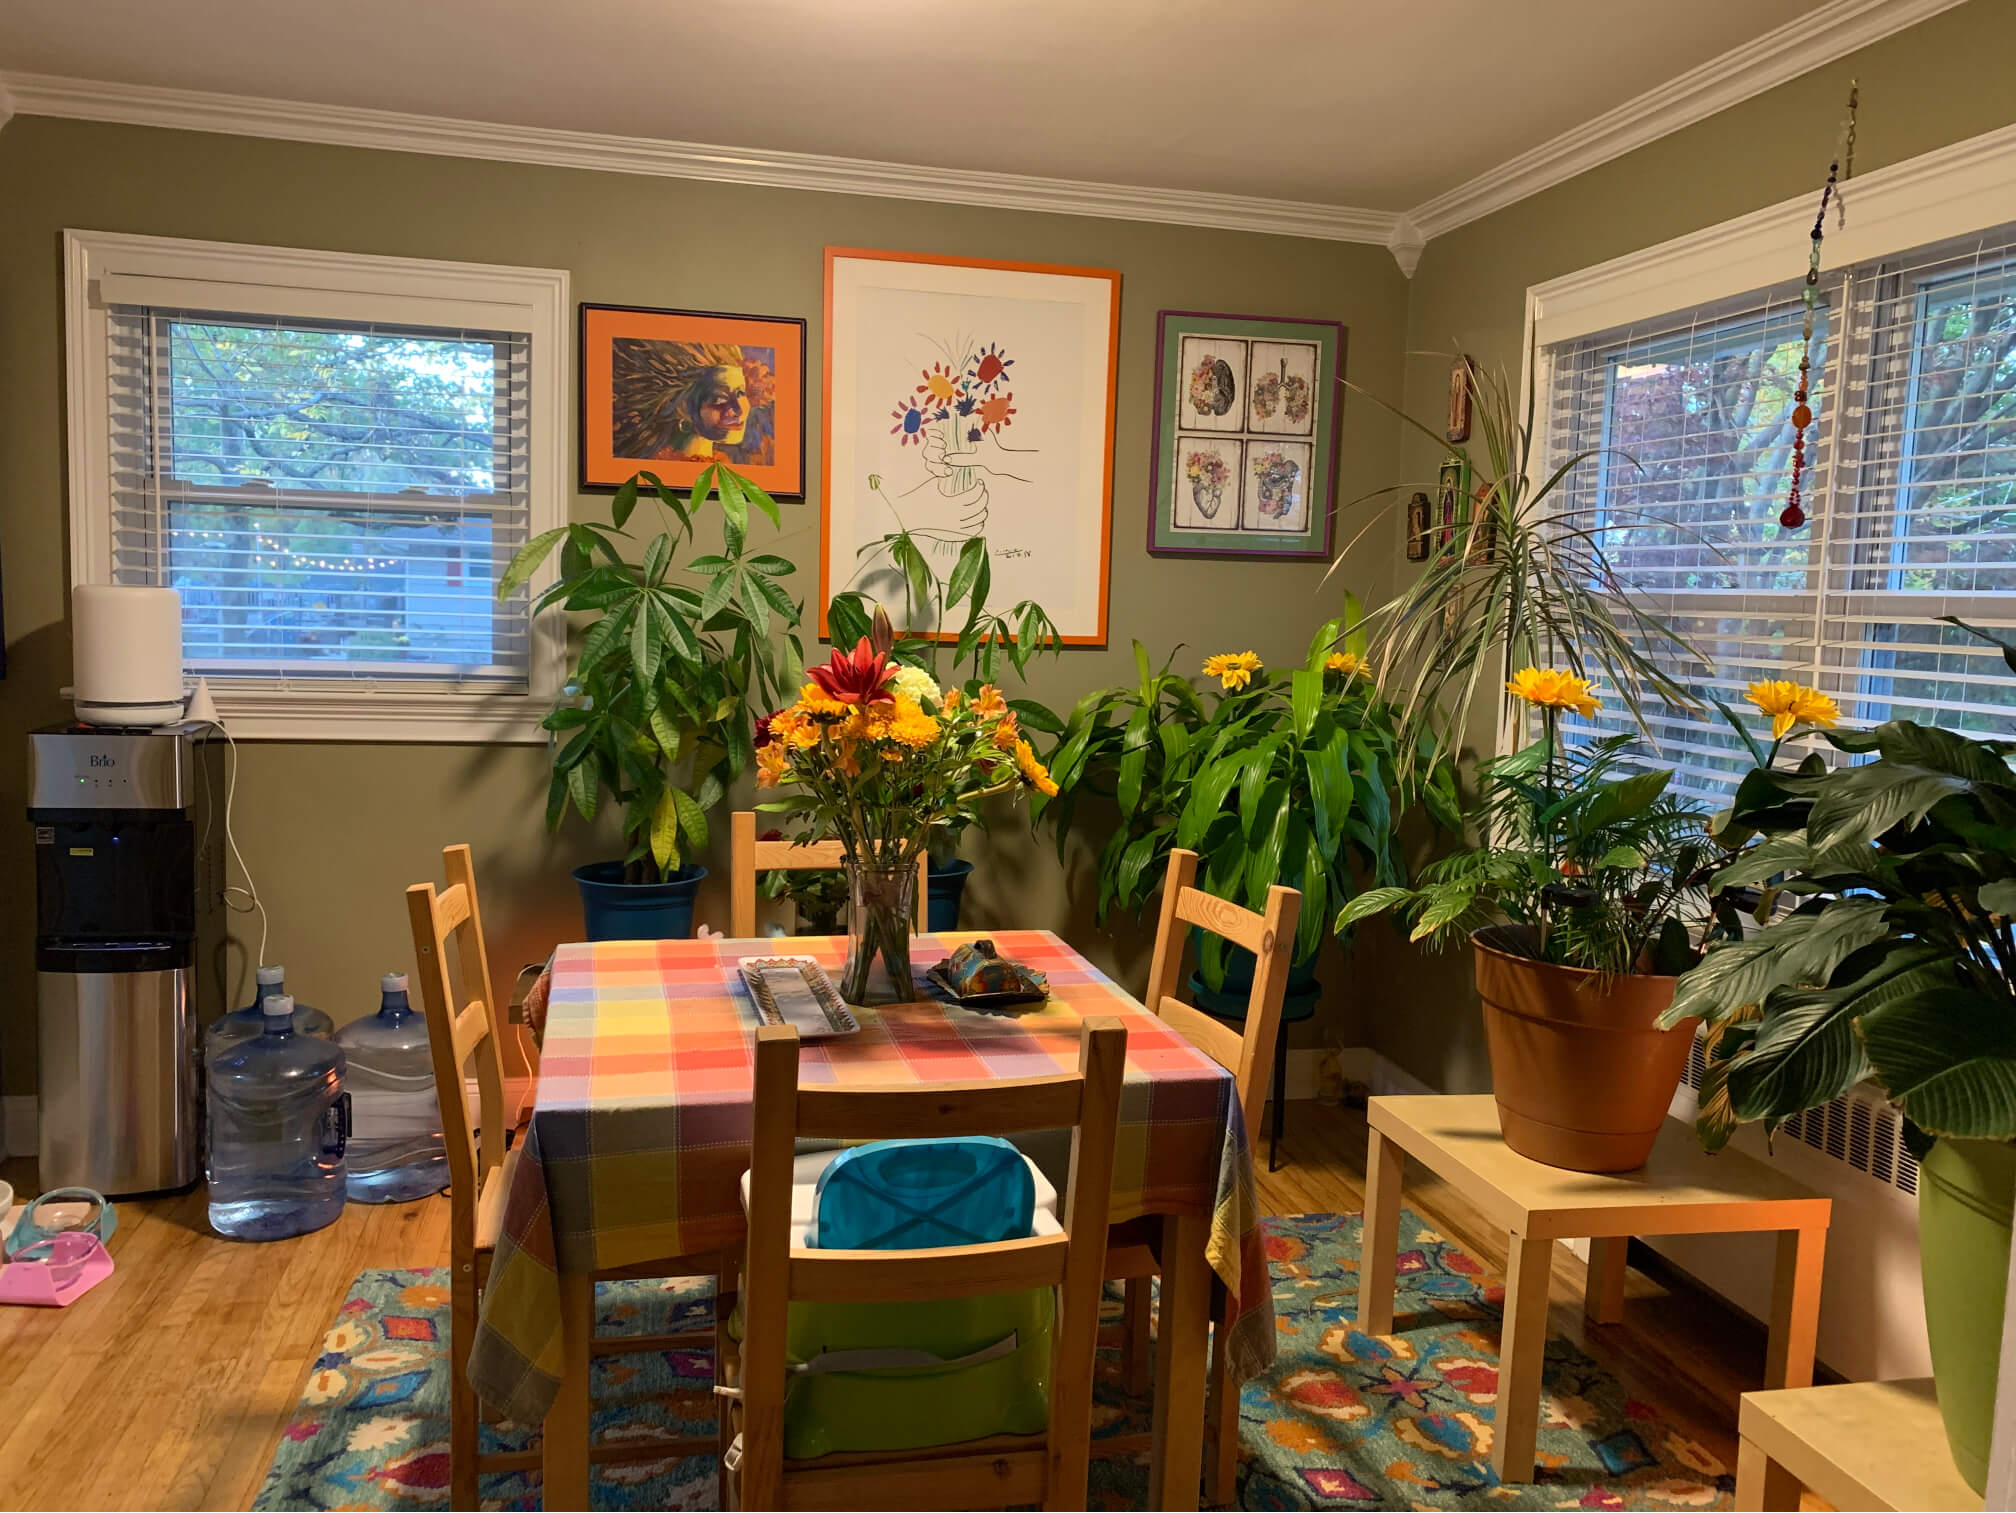 Centre table with chairs and indoor plants in a room